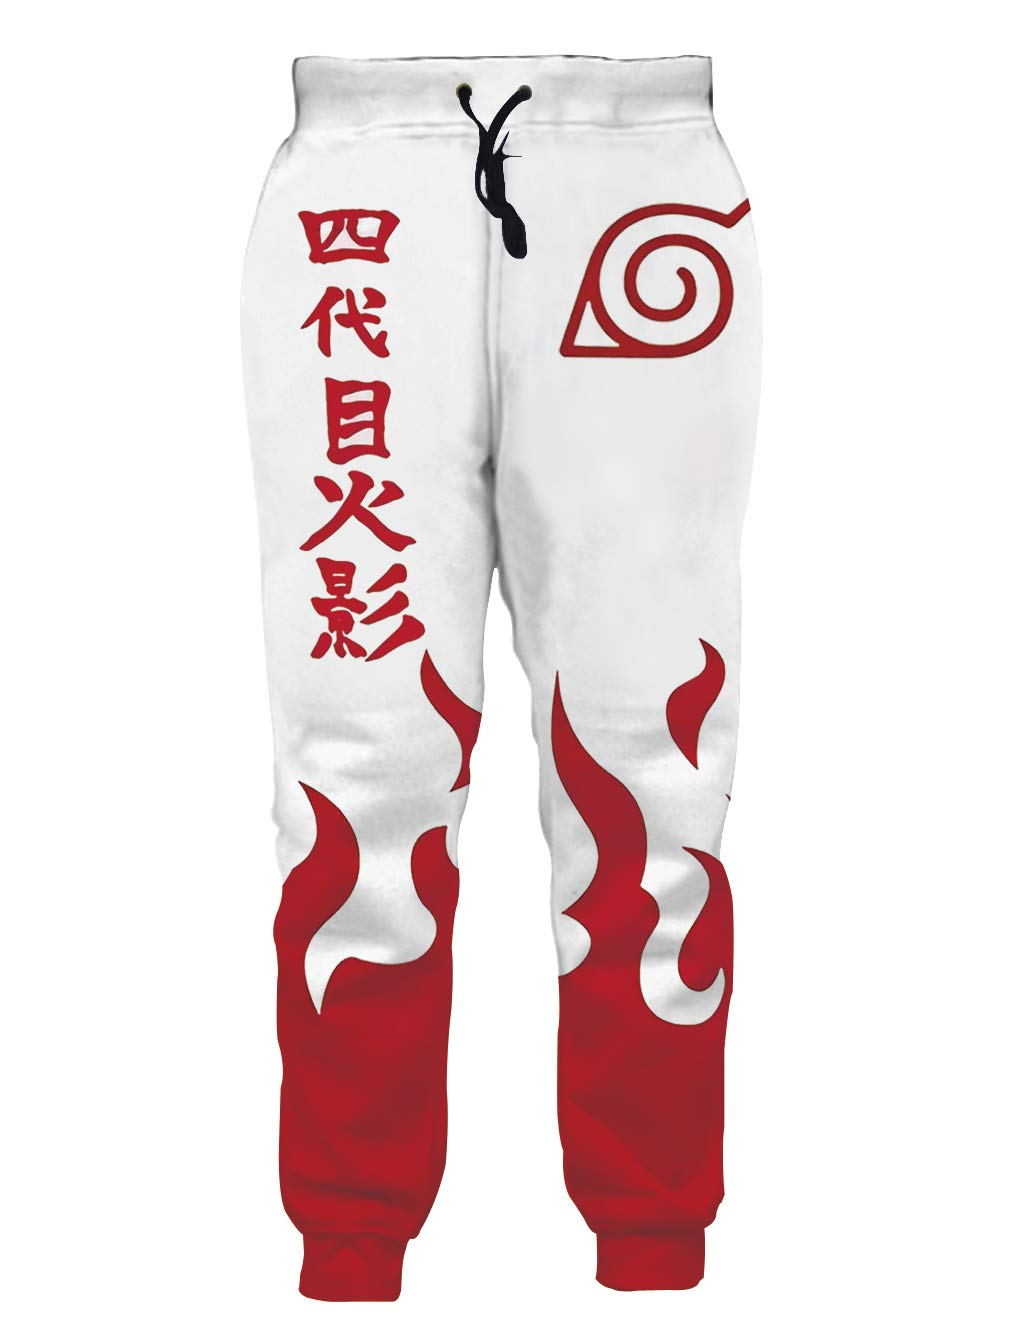 Ocsoc Unisex Novelty Joggers Sweatpants Naruto Cool Anime Uzumaki Fire Graphic with Adjustable Waist Baggy Trousers